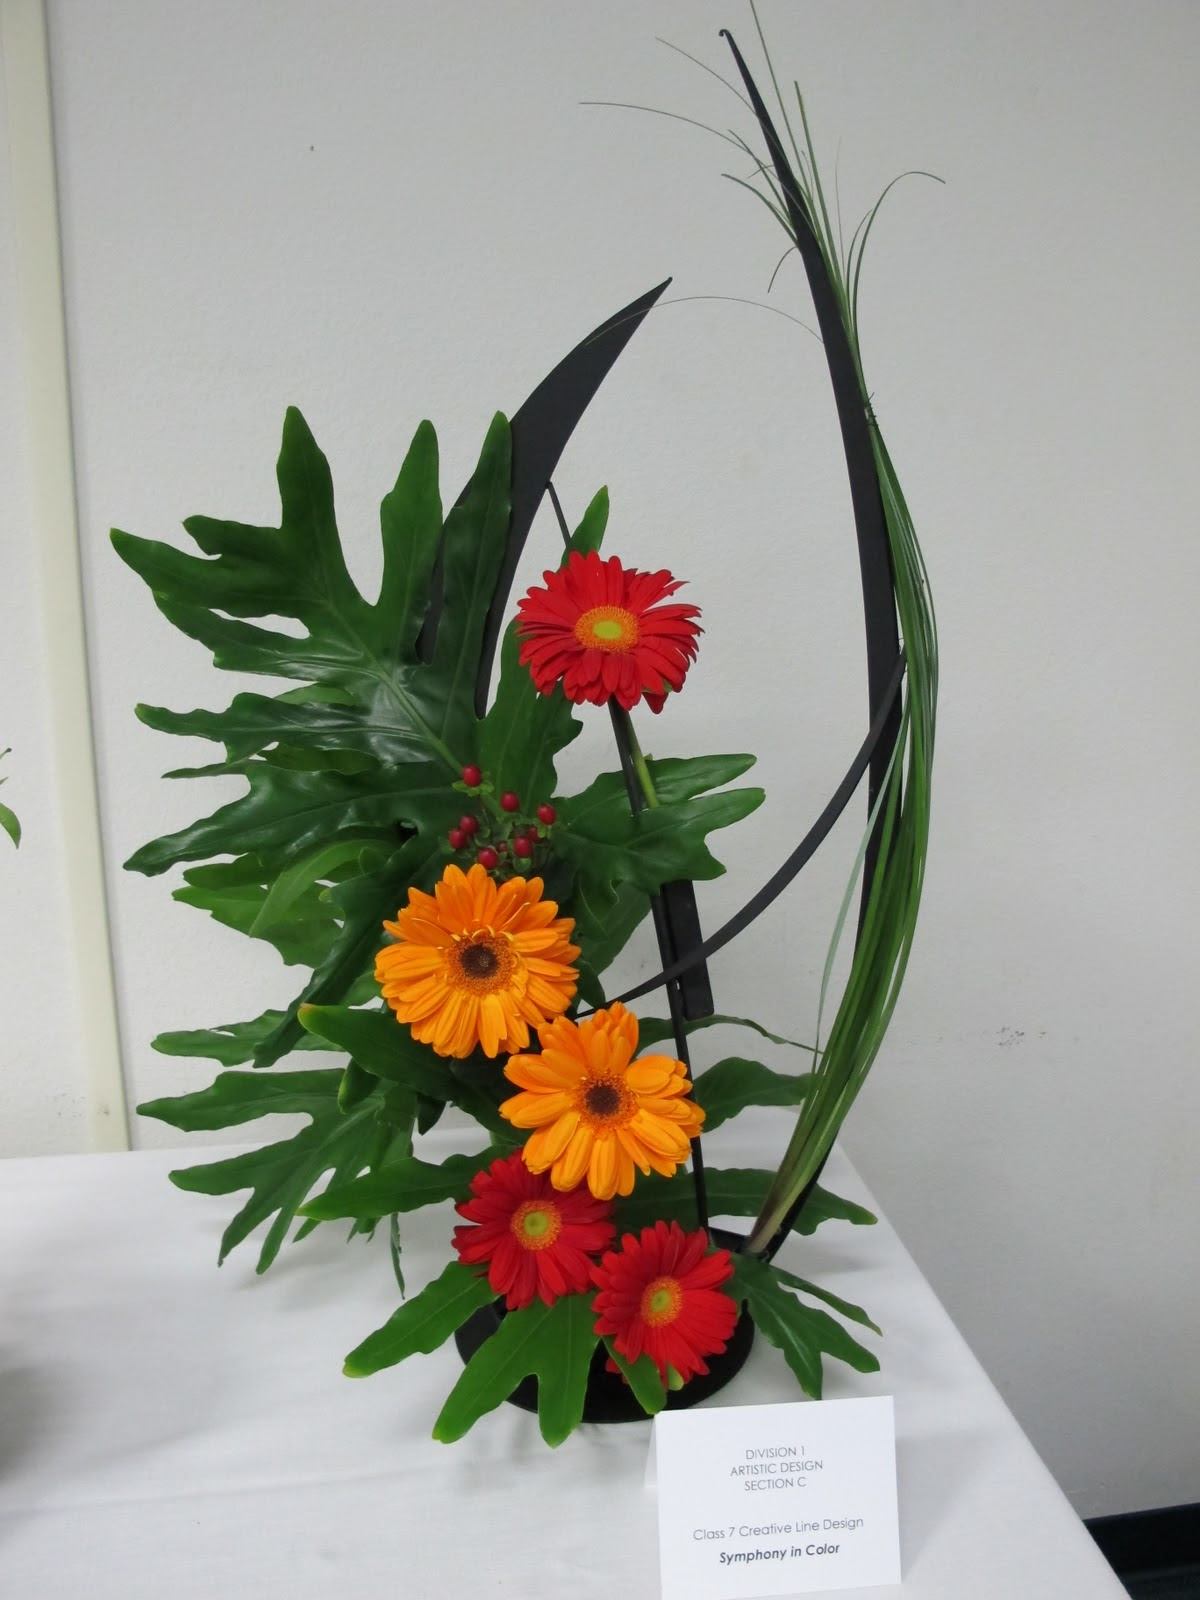 14 Creative Floral Designs Images Creative Flower Arrangement Line Design Creative Flower Show Designs And Floral Arrangements With Sunflowers Newdesignfile Com